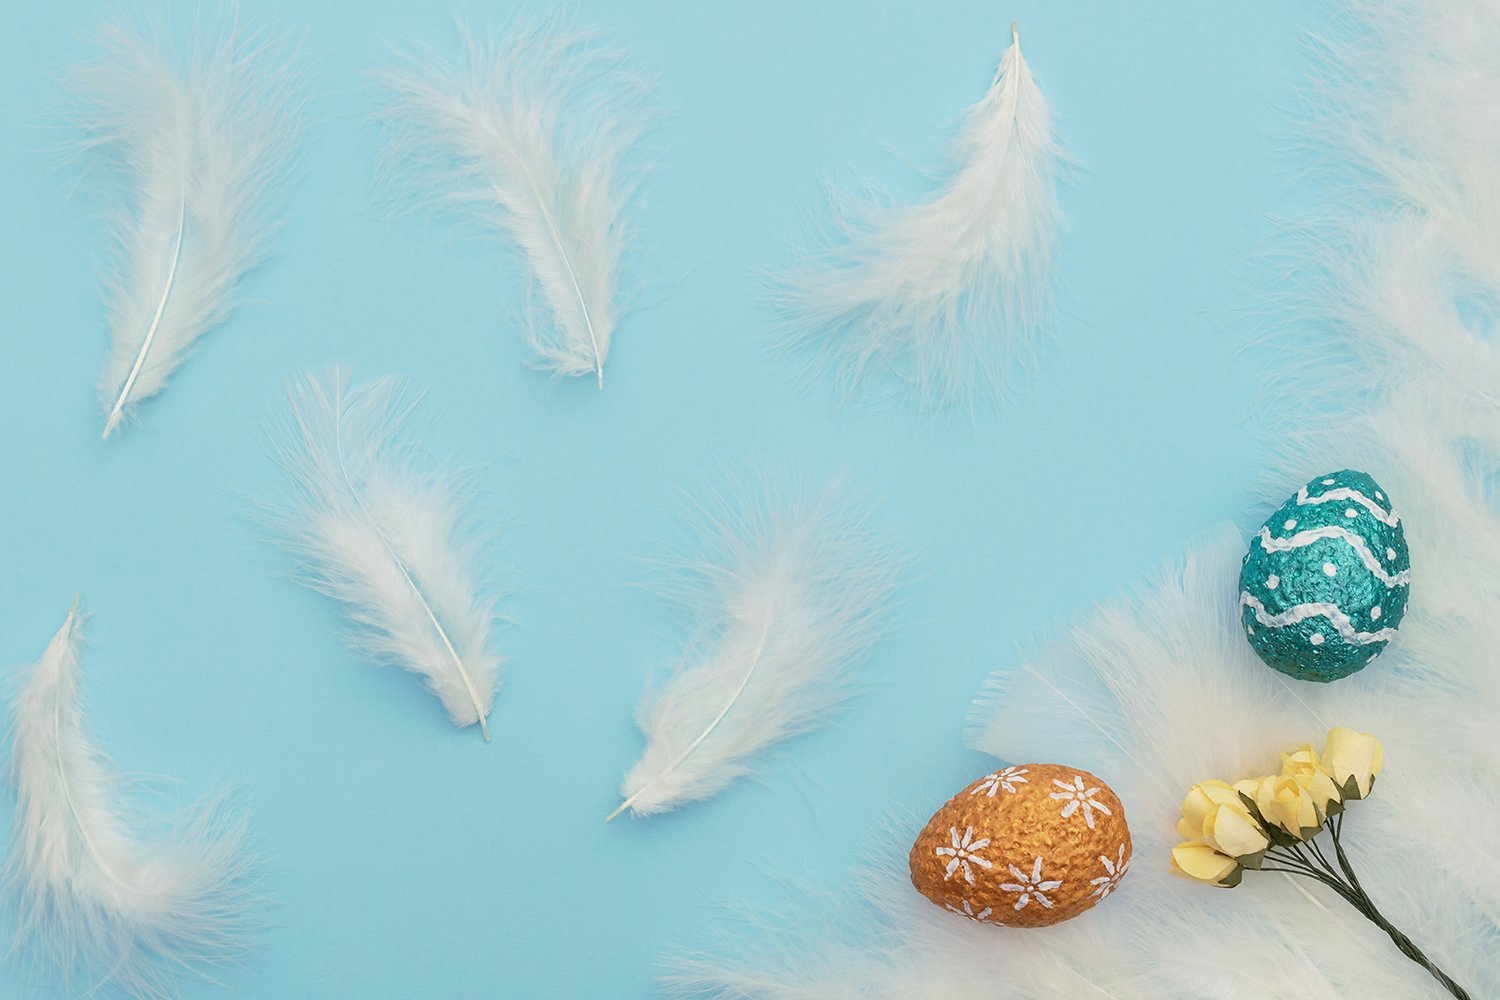 Easter eggs with yellow spring flowers and white feathers example image 1